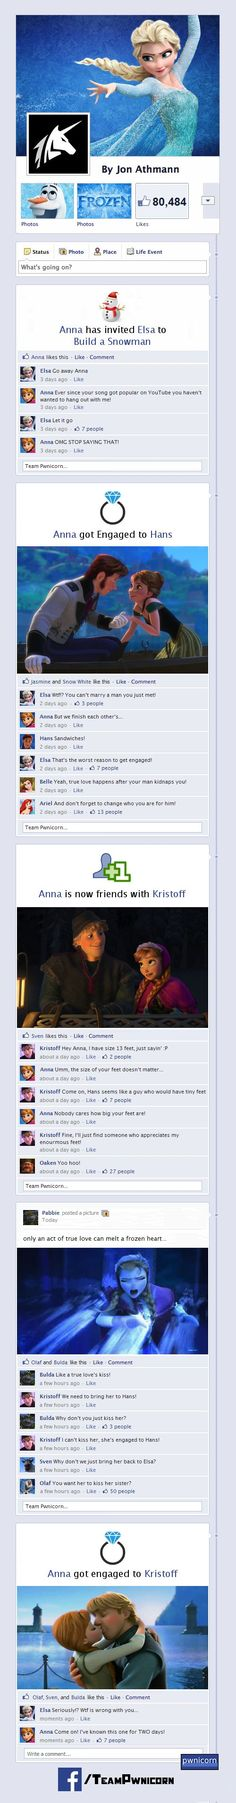 Y si Frozen transcurriera en Facebook...